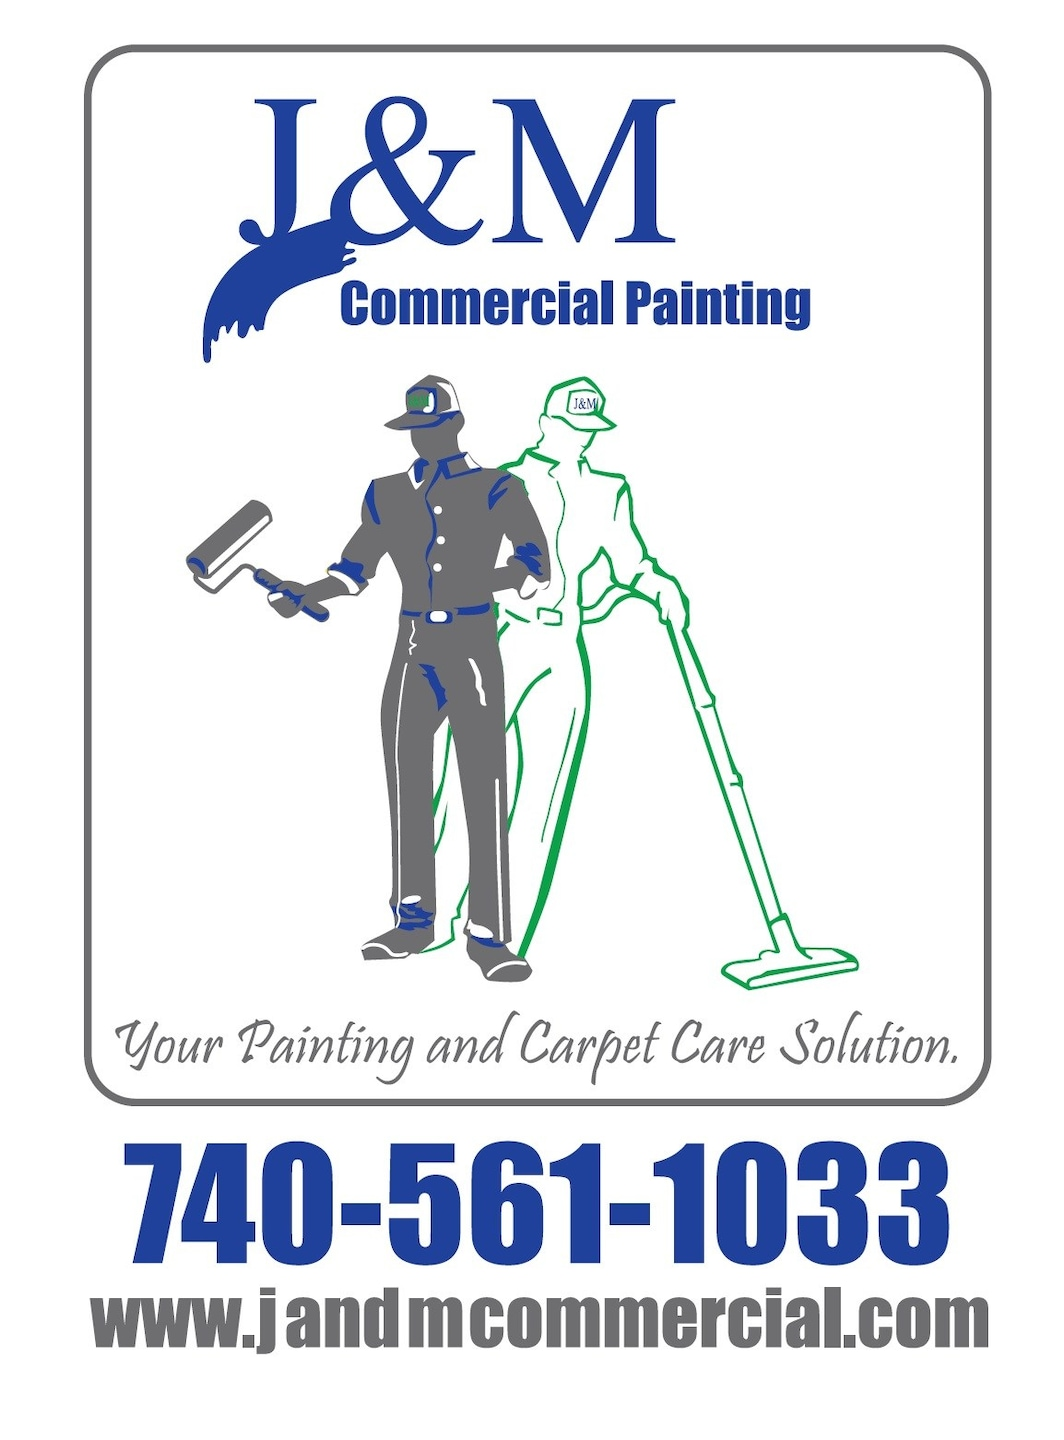 J & M Commercial Painting